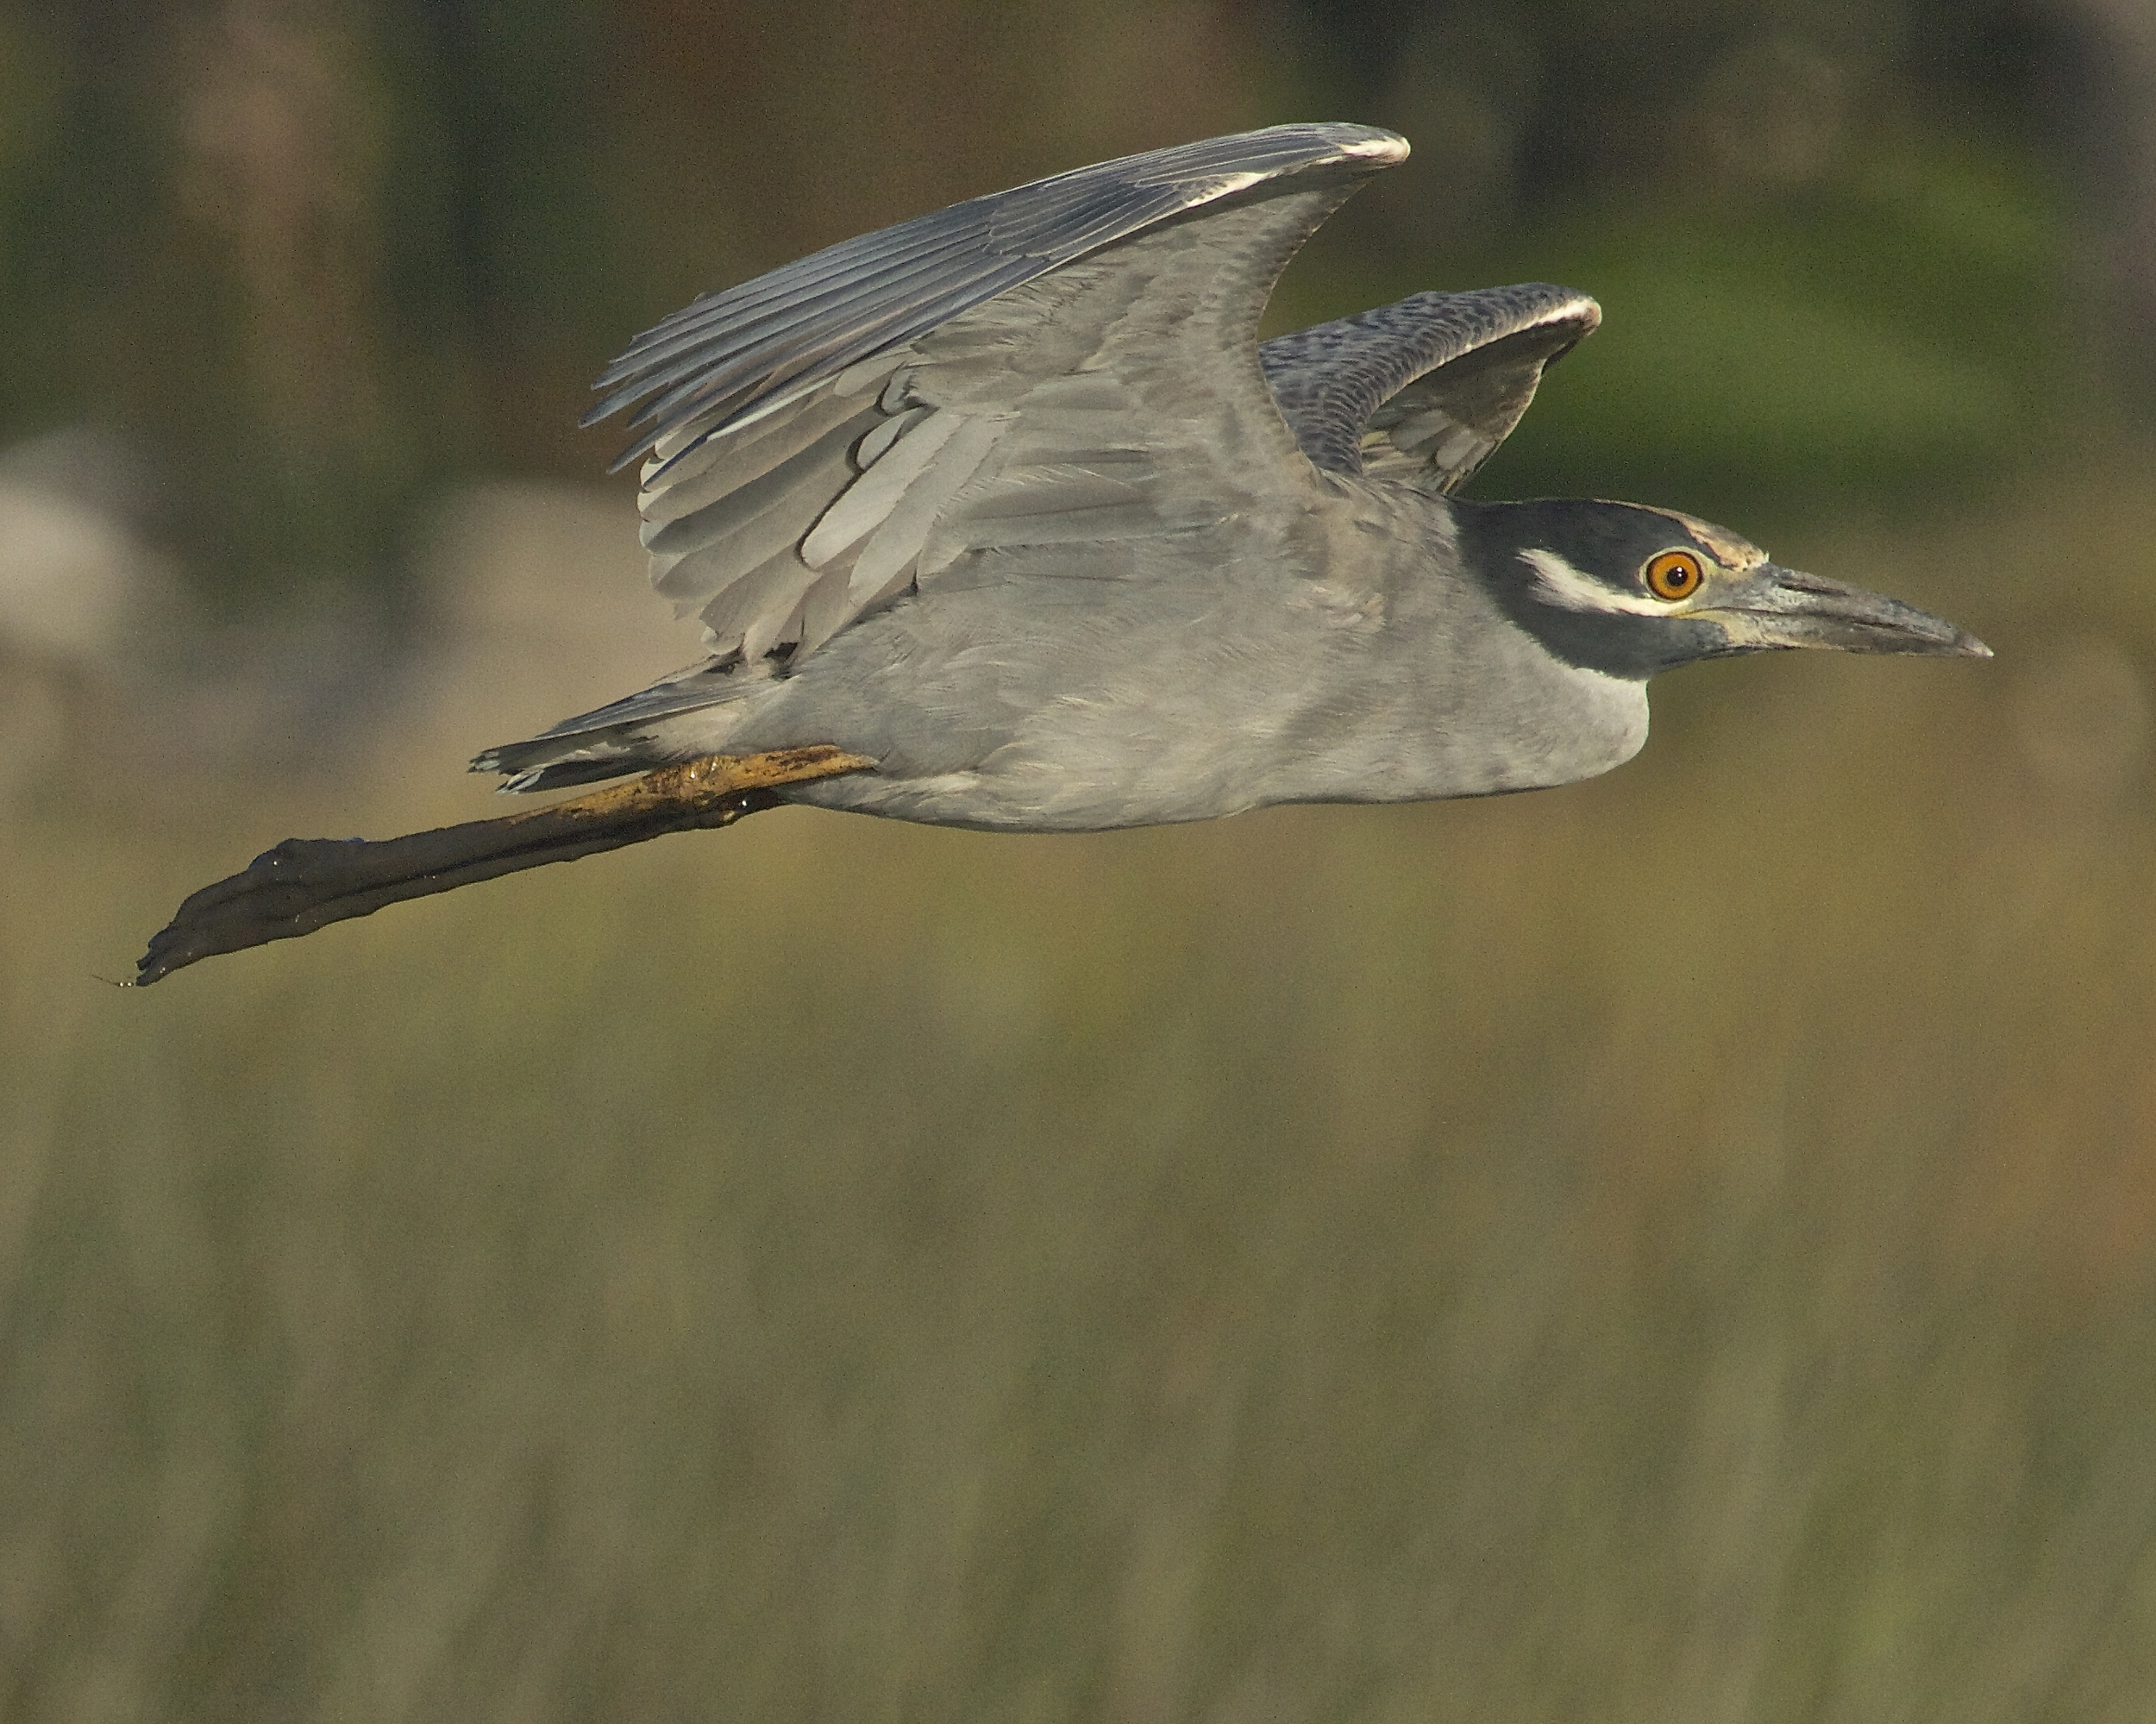 George, the Yellow Crowned Night Heron has been gathering dirt on someone, and it is all over his legs.